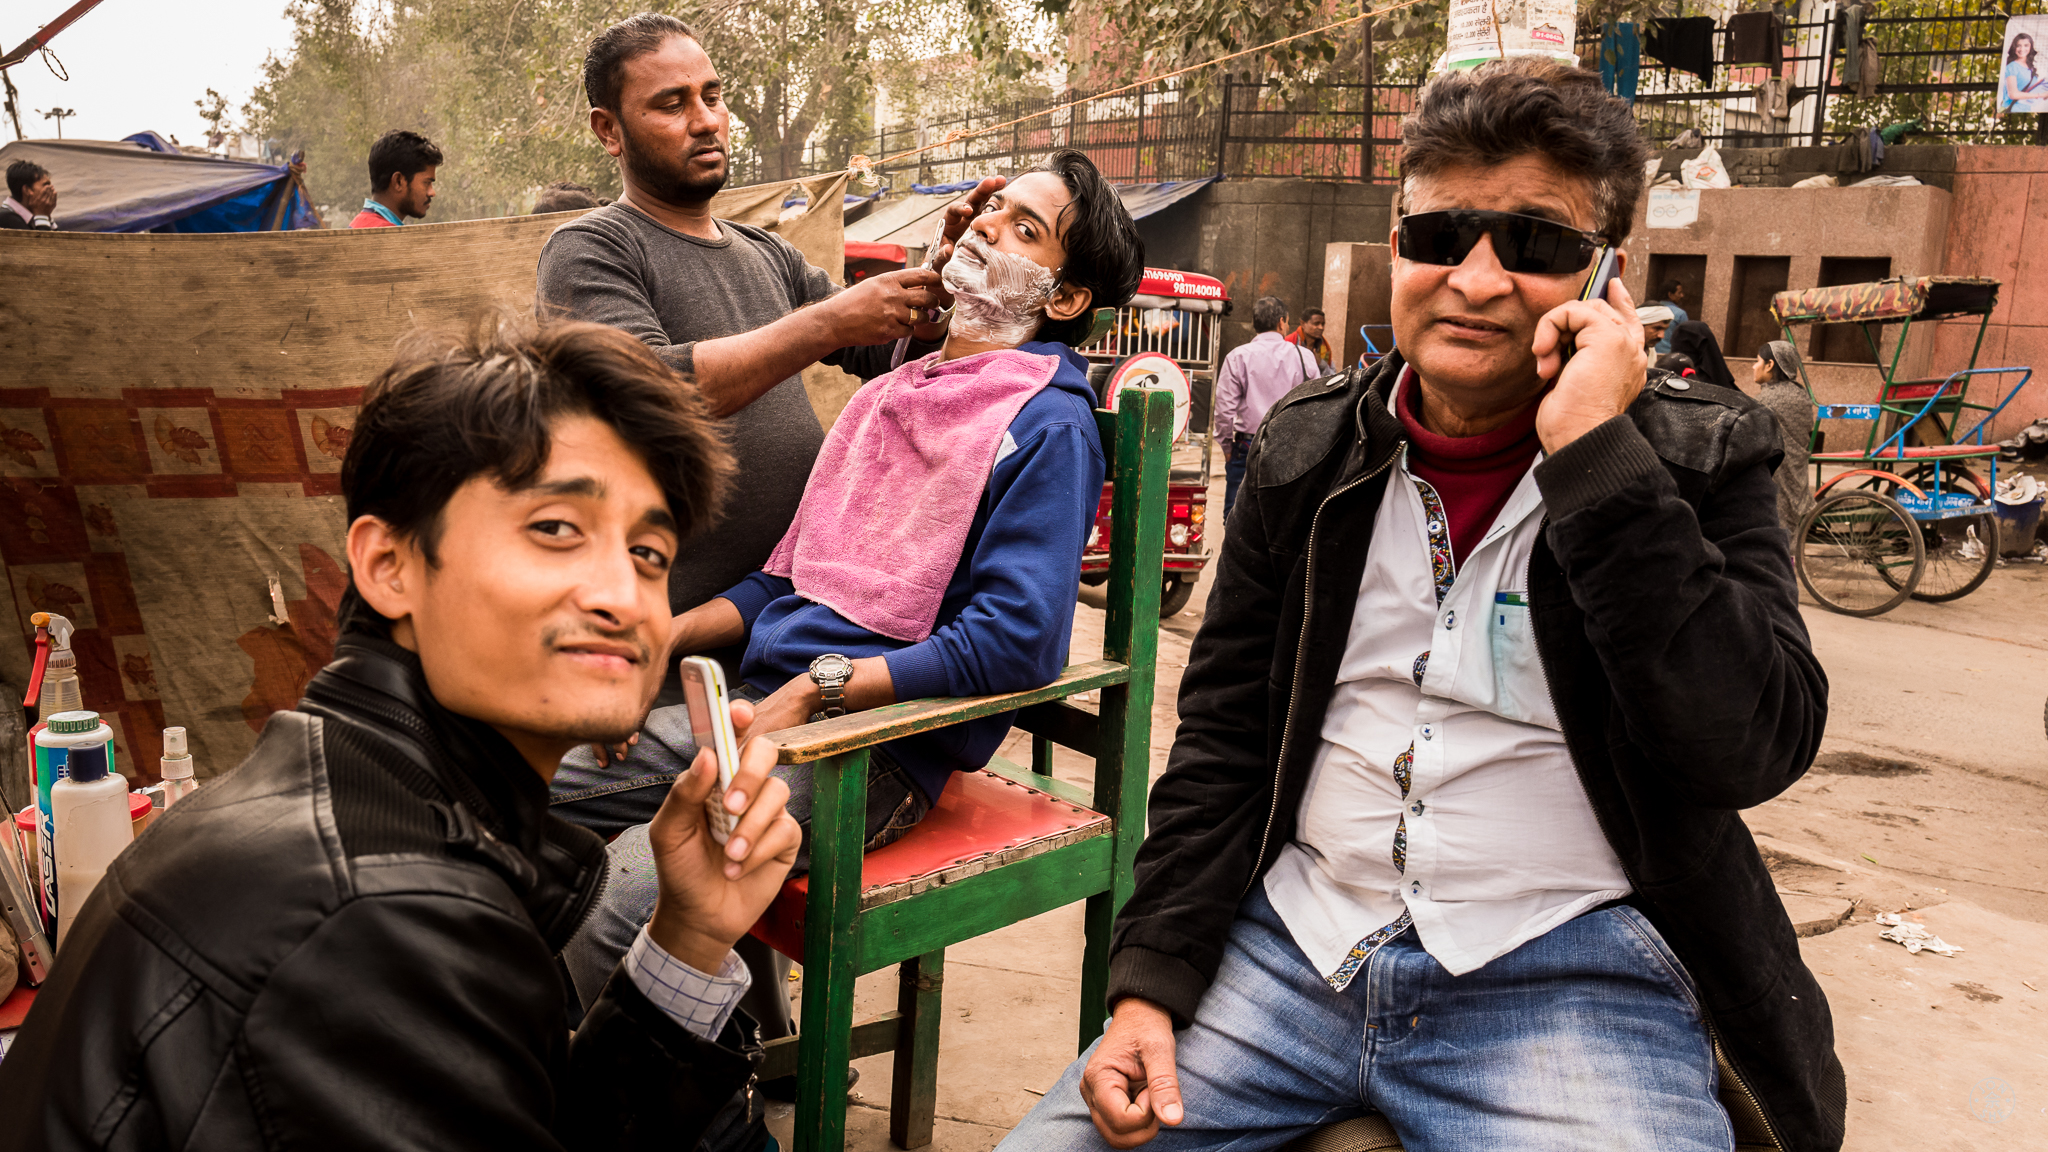 """Waiting for the Barber"" . Old Delhi, India. January 2017. © Jon She. Leica M10, Leica Summilux 28mm f/1.4 ASPH."